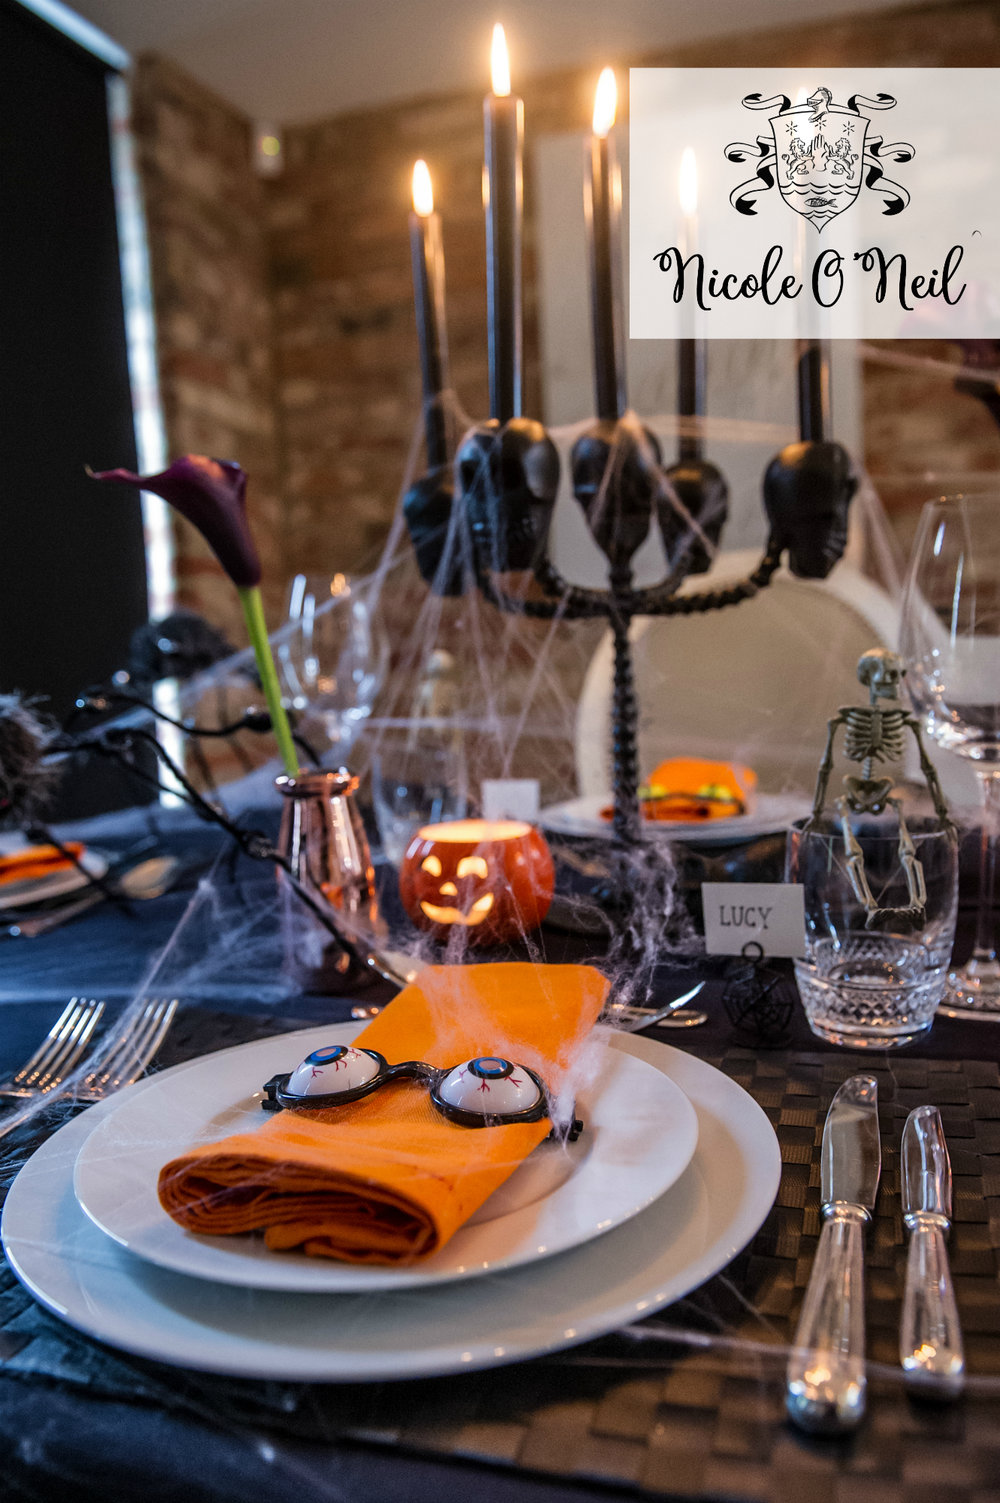 Halloween Party Decoration Ideas and Halloween Table Setting Inspiration - Skeleton Candelabra Centrepiece and Fake Spider & Be Inspired: Halloween Table Setting \u2014 Nicole O\u0027Neil - Real ...